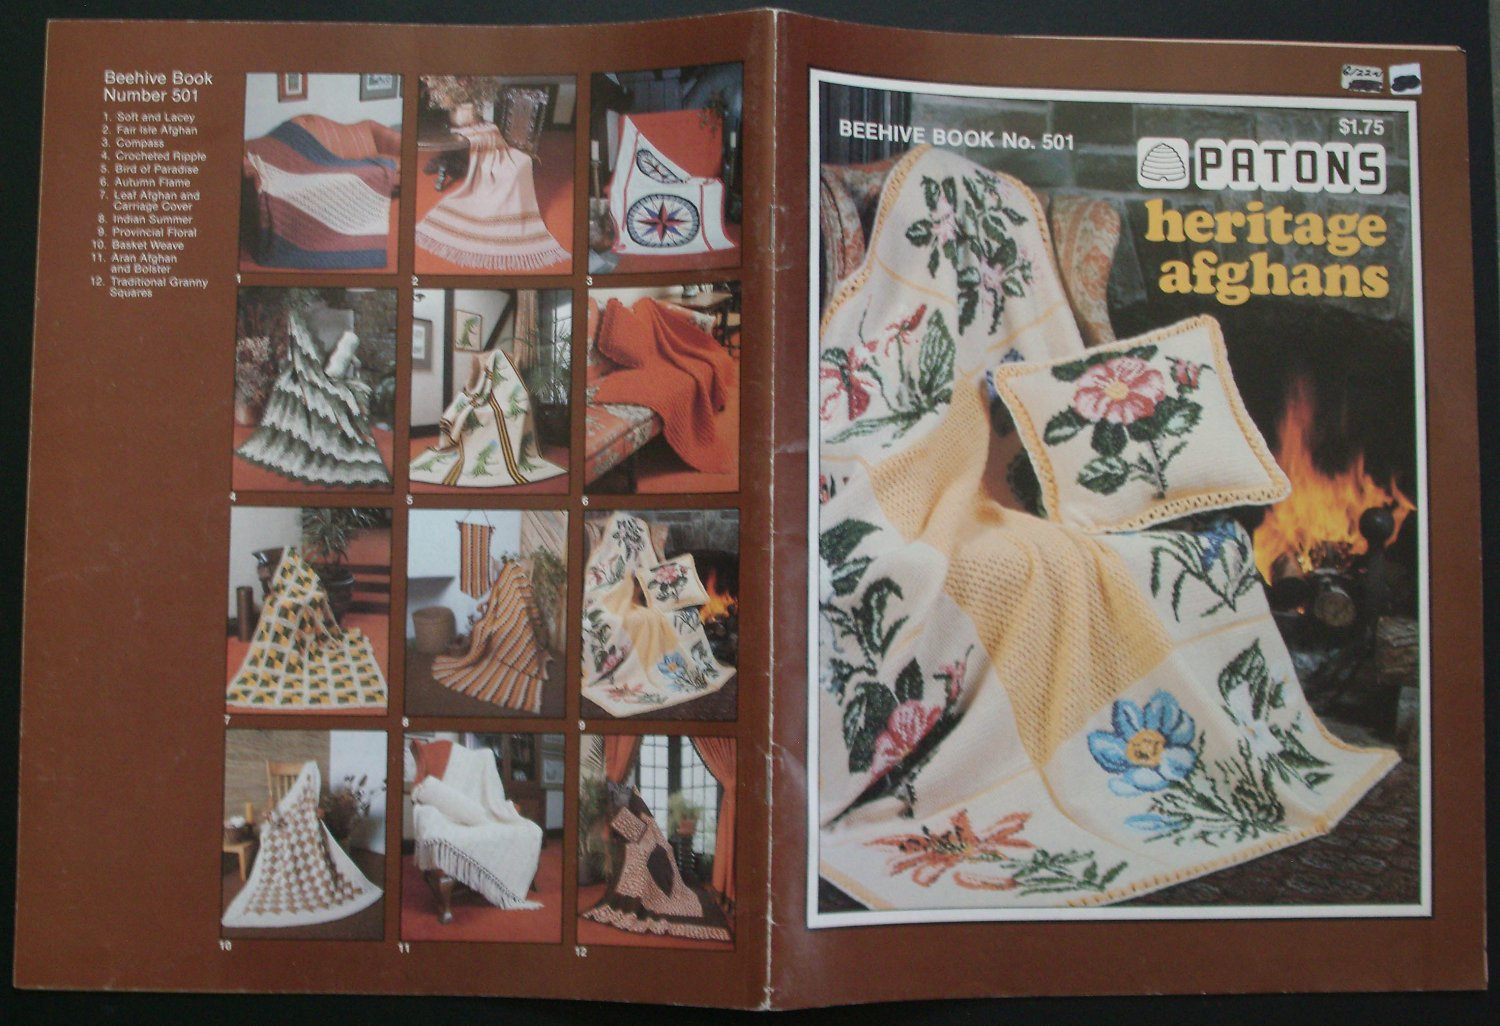 Patons Beehive Pattern Book No. 501 Heritage Afghans